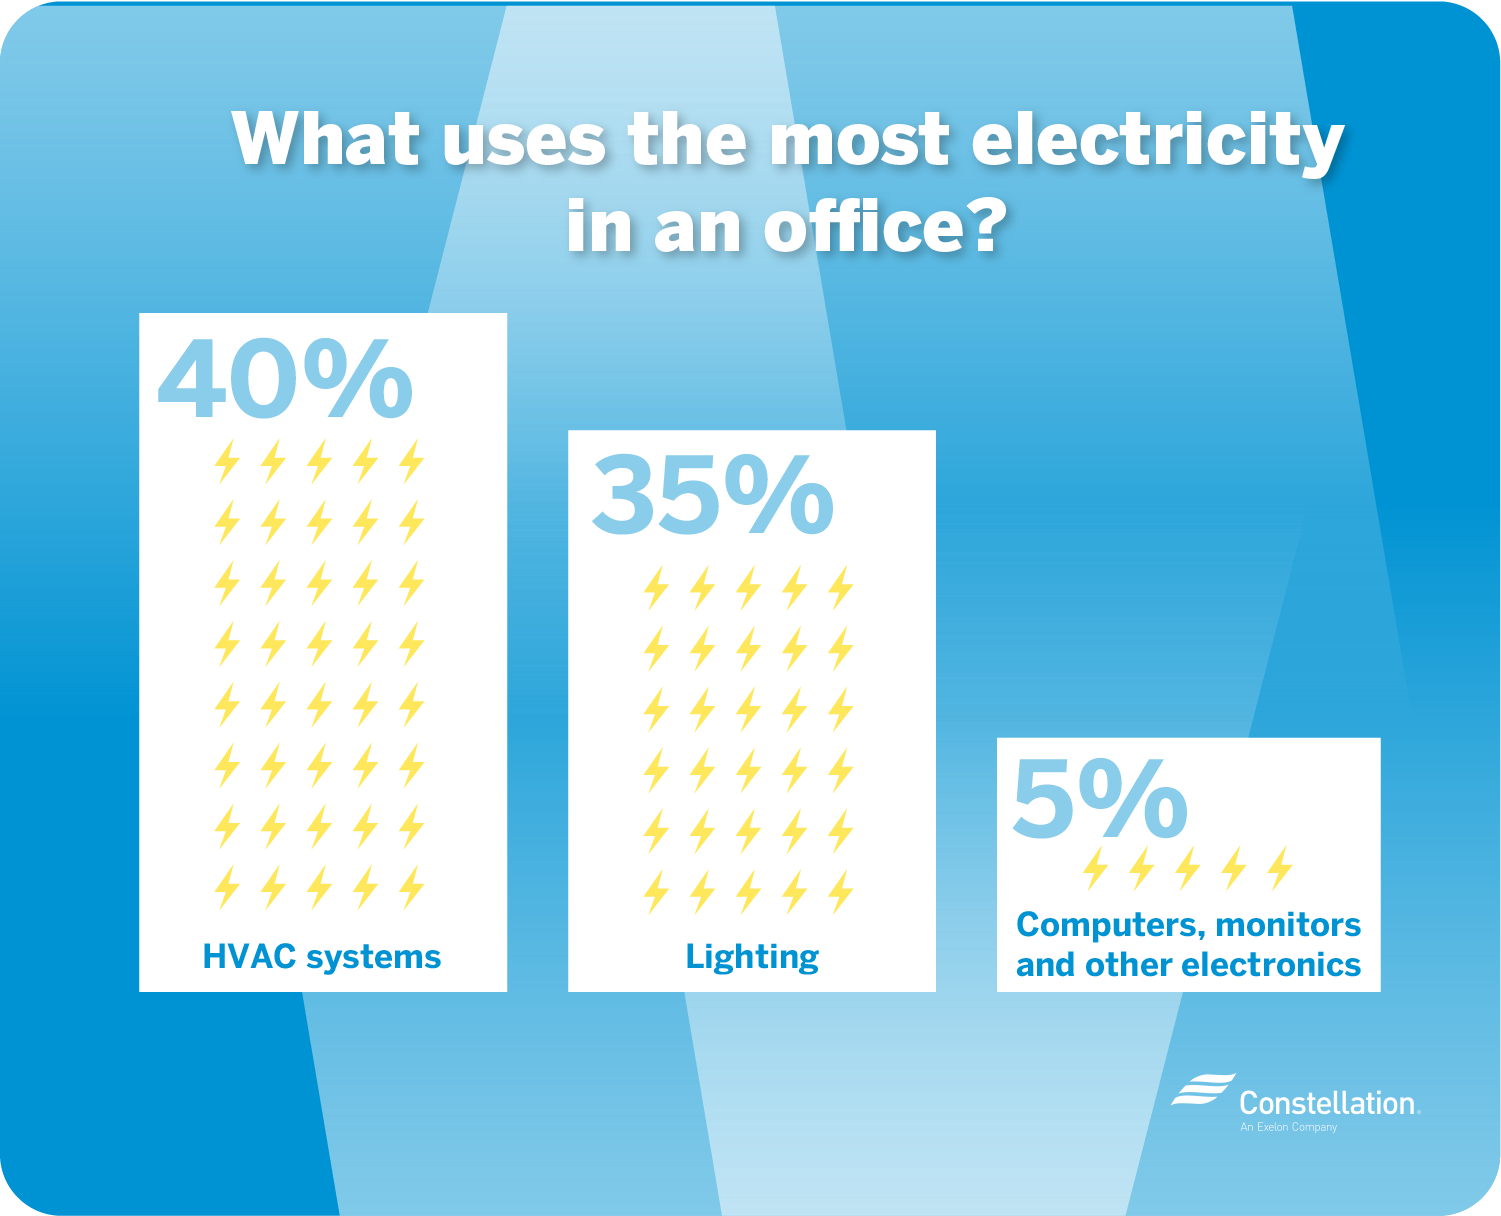 What uses the most electricity in an office?